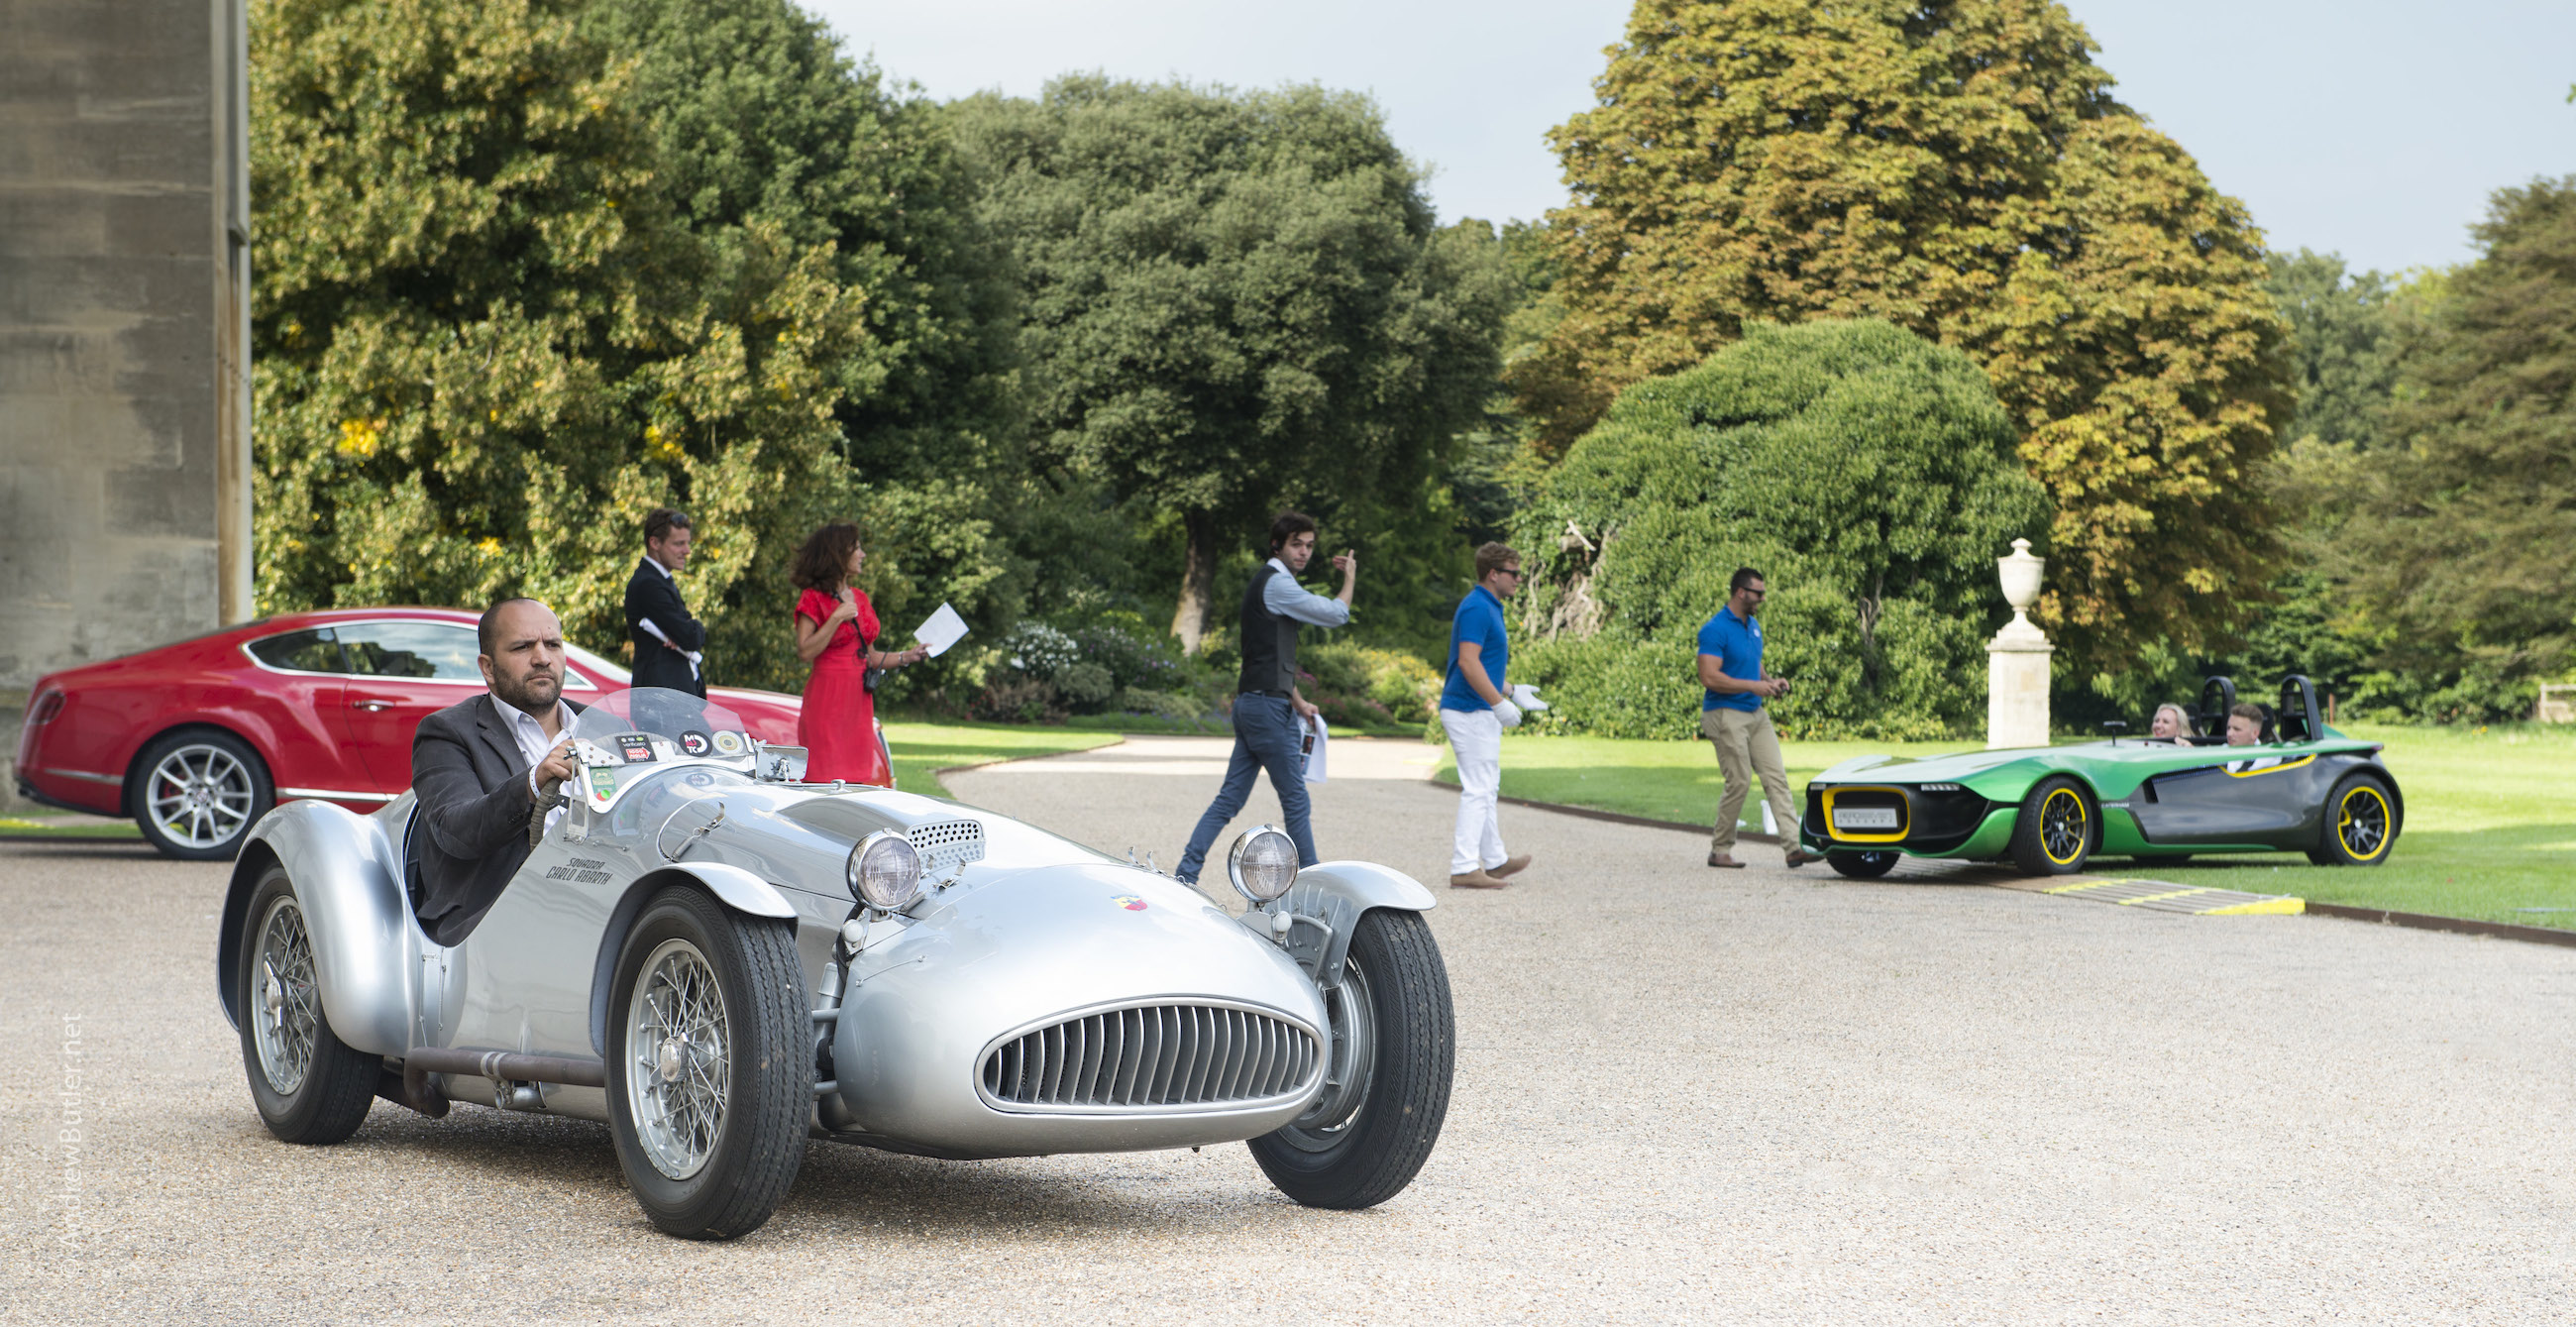 Salon Privé 2014 photography by Andrew Butler